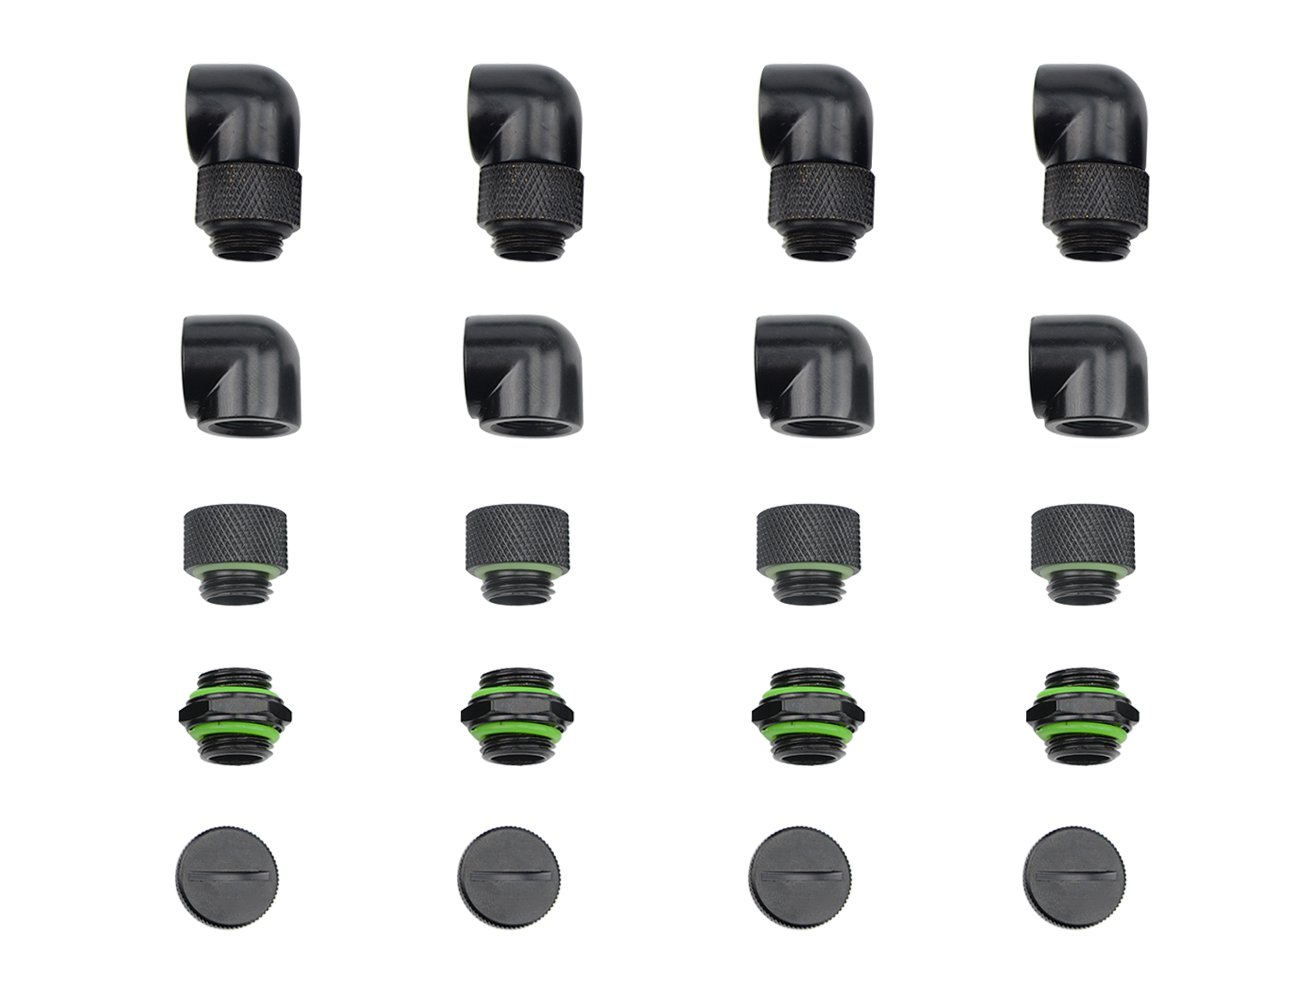 """BXQINLENX 20 PCS Silver Chrome G1/4"""" Plug Fittings for Computer Water Cooling System (Black)"""